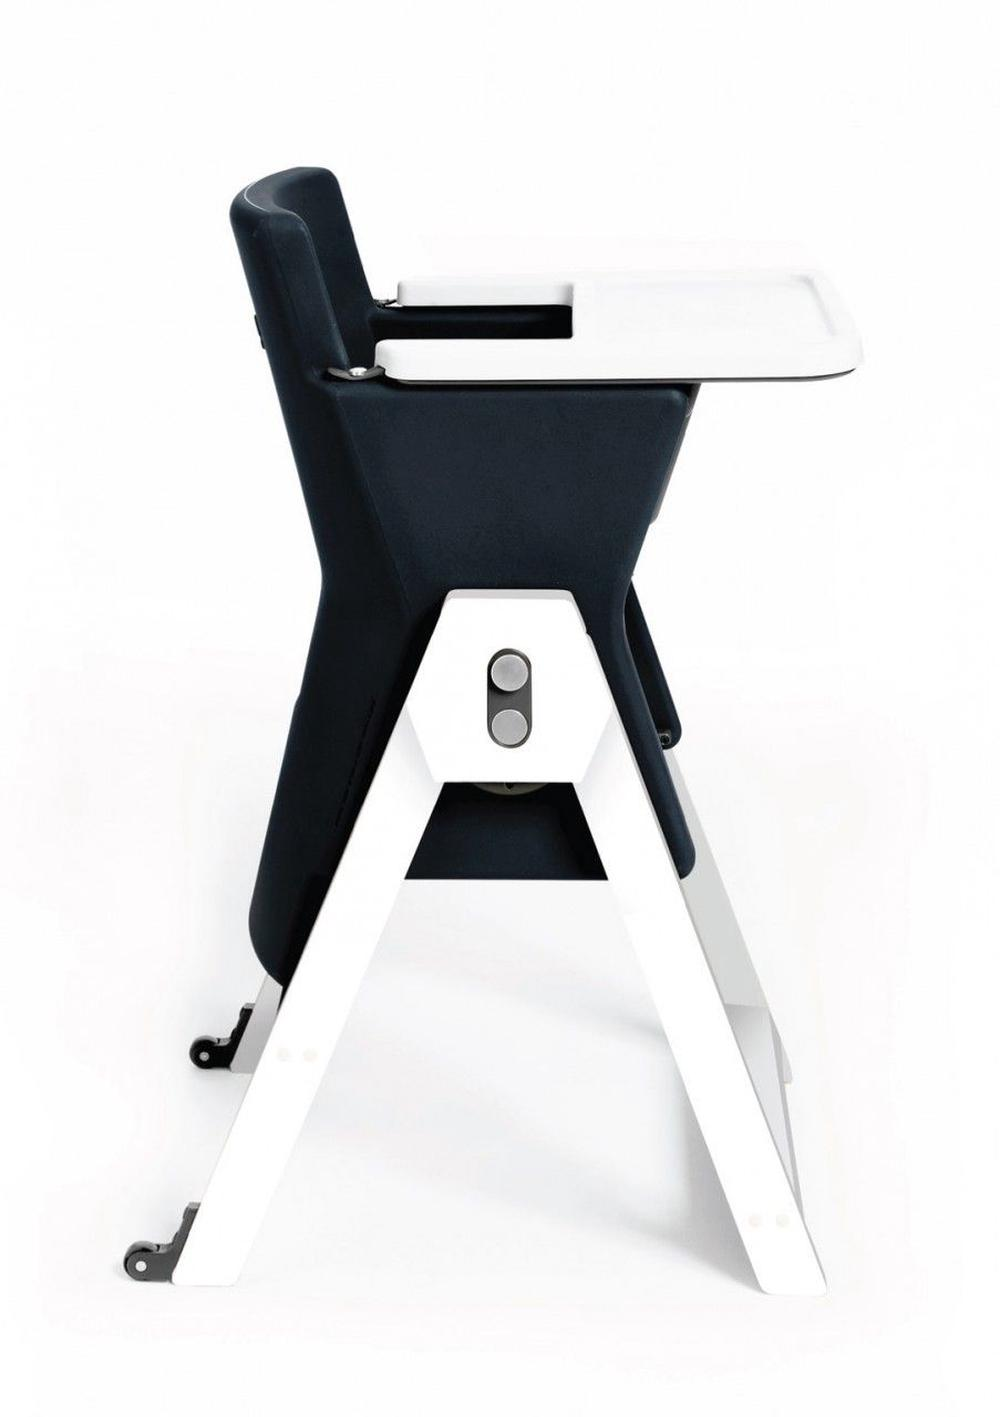 high chair wooden legs farmhouse kids table and chairs set age design hilo baby white buy online at by